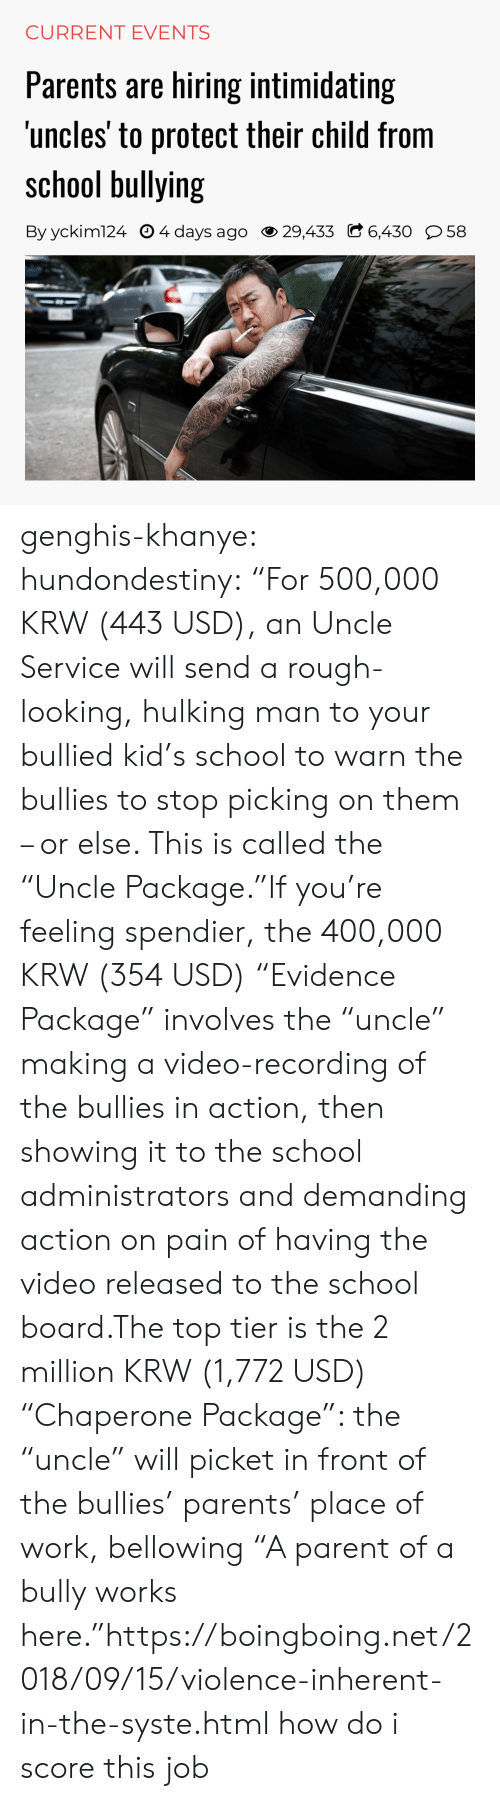 """Carolina Panthers, Parents, and School: CURRENT EVENTS  Parents are hiring intimidating  uncles' to protect their child from  school bullying  By yckim124 O 4 days ago 29,433 C 6,430 58 genghis-khanye: hundondestiny: """"For 500,000 KRW (443 USD), an Uncle Service will send a rough-looking, hulking man to your bullied kid's school to warn the bullies to stop picking on them – or else. This is called the """"Uncle Package.""""If you're feeling spendier, the 400,000 KRW (354 USD) """"Evidence Package"""" involves the """"uncle"""" making a video-recording of the bullies in action, then showing it to the school administrators and demanding action on pain of having the video released to the school board.The top tier is the 2 million KRW (1,772 USD) """"Chaperone Package"""": the """"uncle"""" will picket in front of the bullies' parents' place of work, bellowing """"A parent of a bully works here.""""https://boingboing.net/2018/09/15/violence-inherent-in-the-syste.html  how do i score this job"""